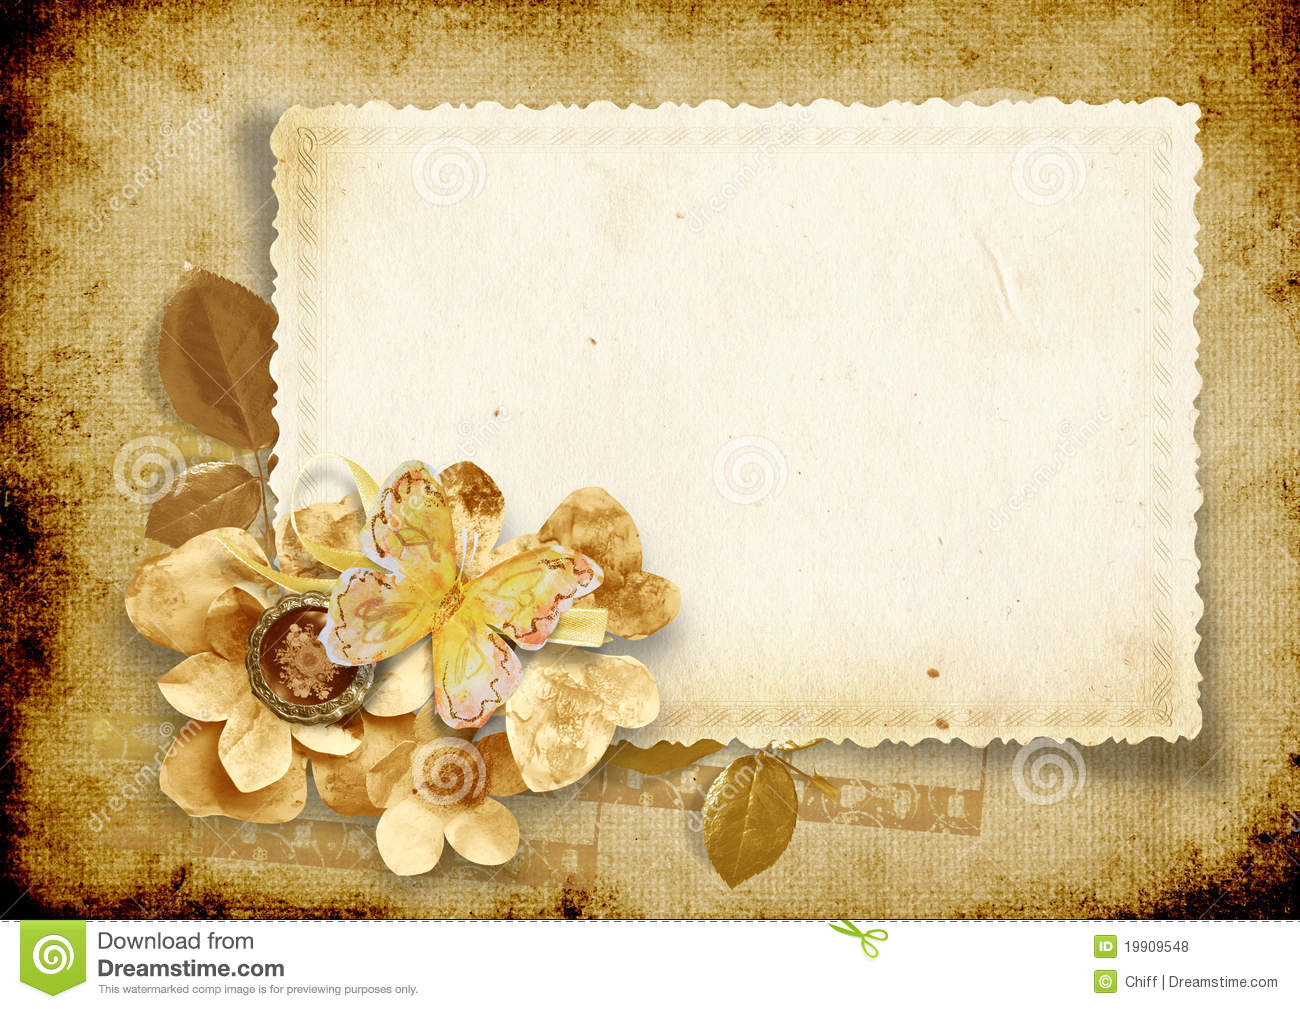 Fall Harry Potter Wallpaper Vintage Background With Card And Paper Flowers Royalty